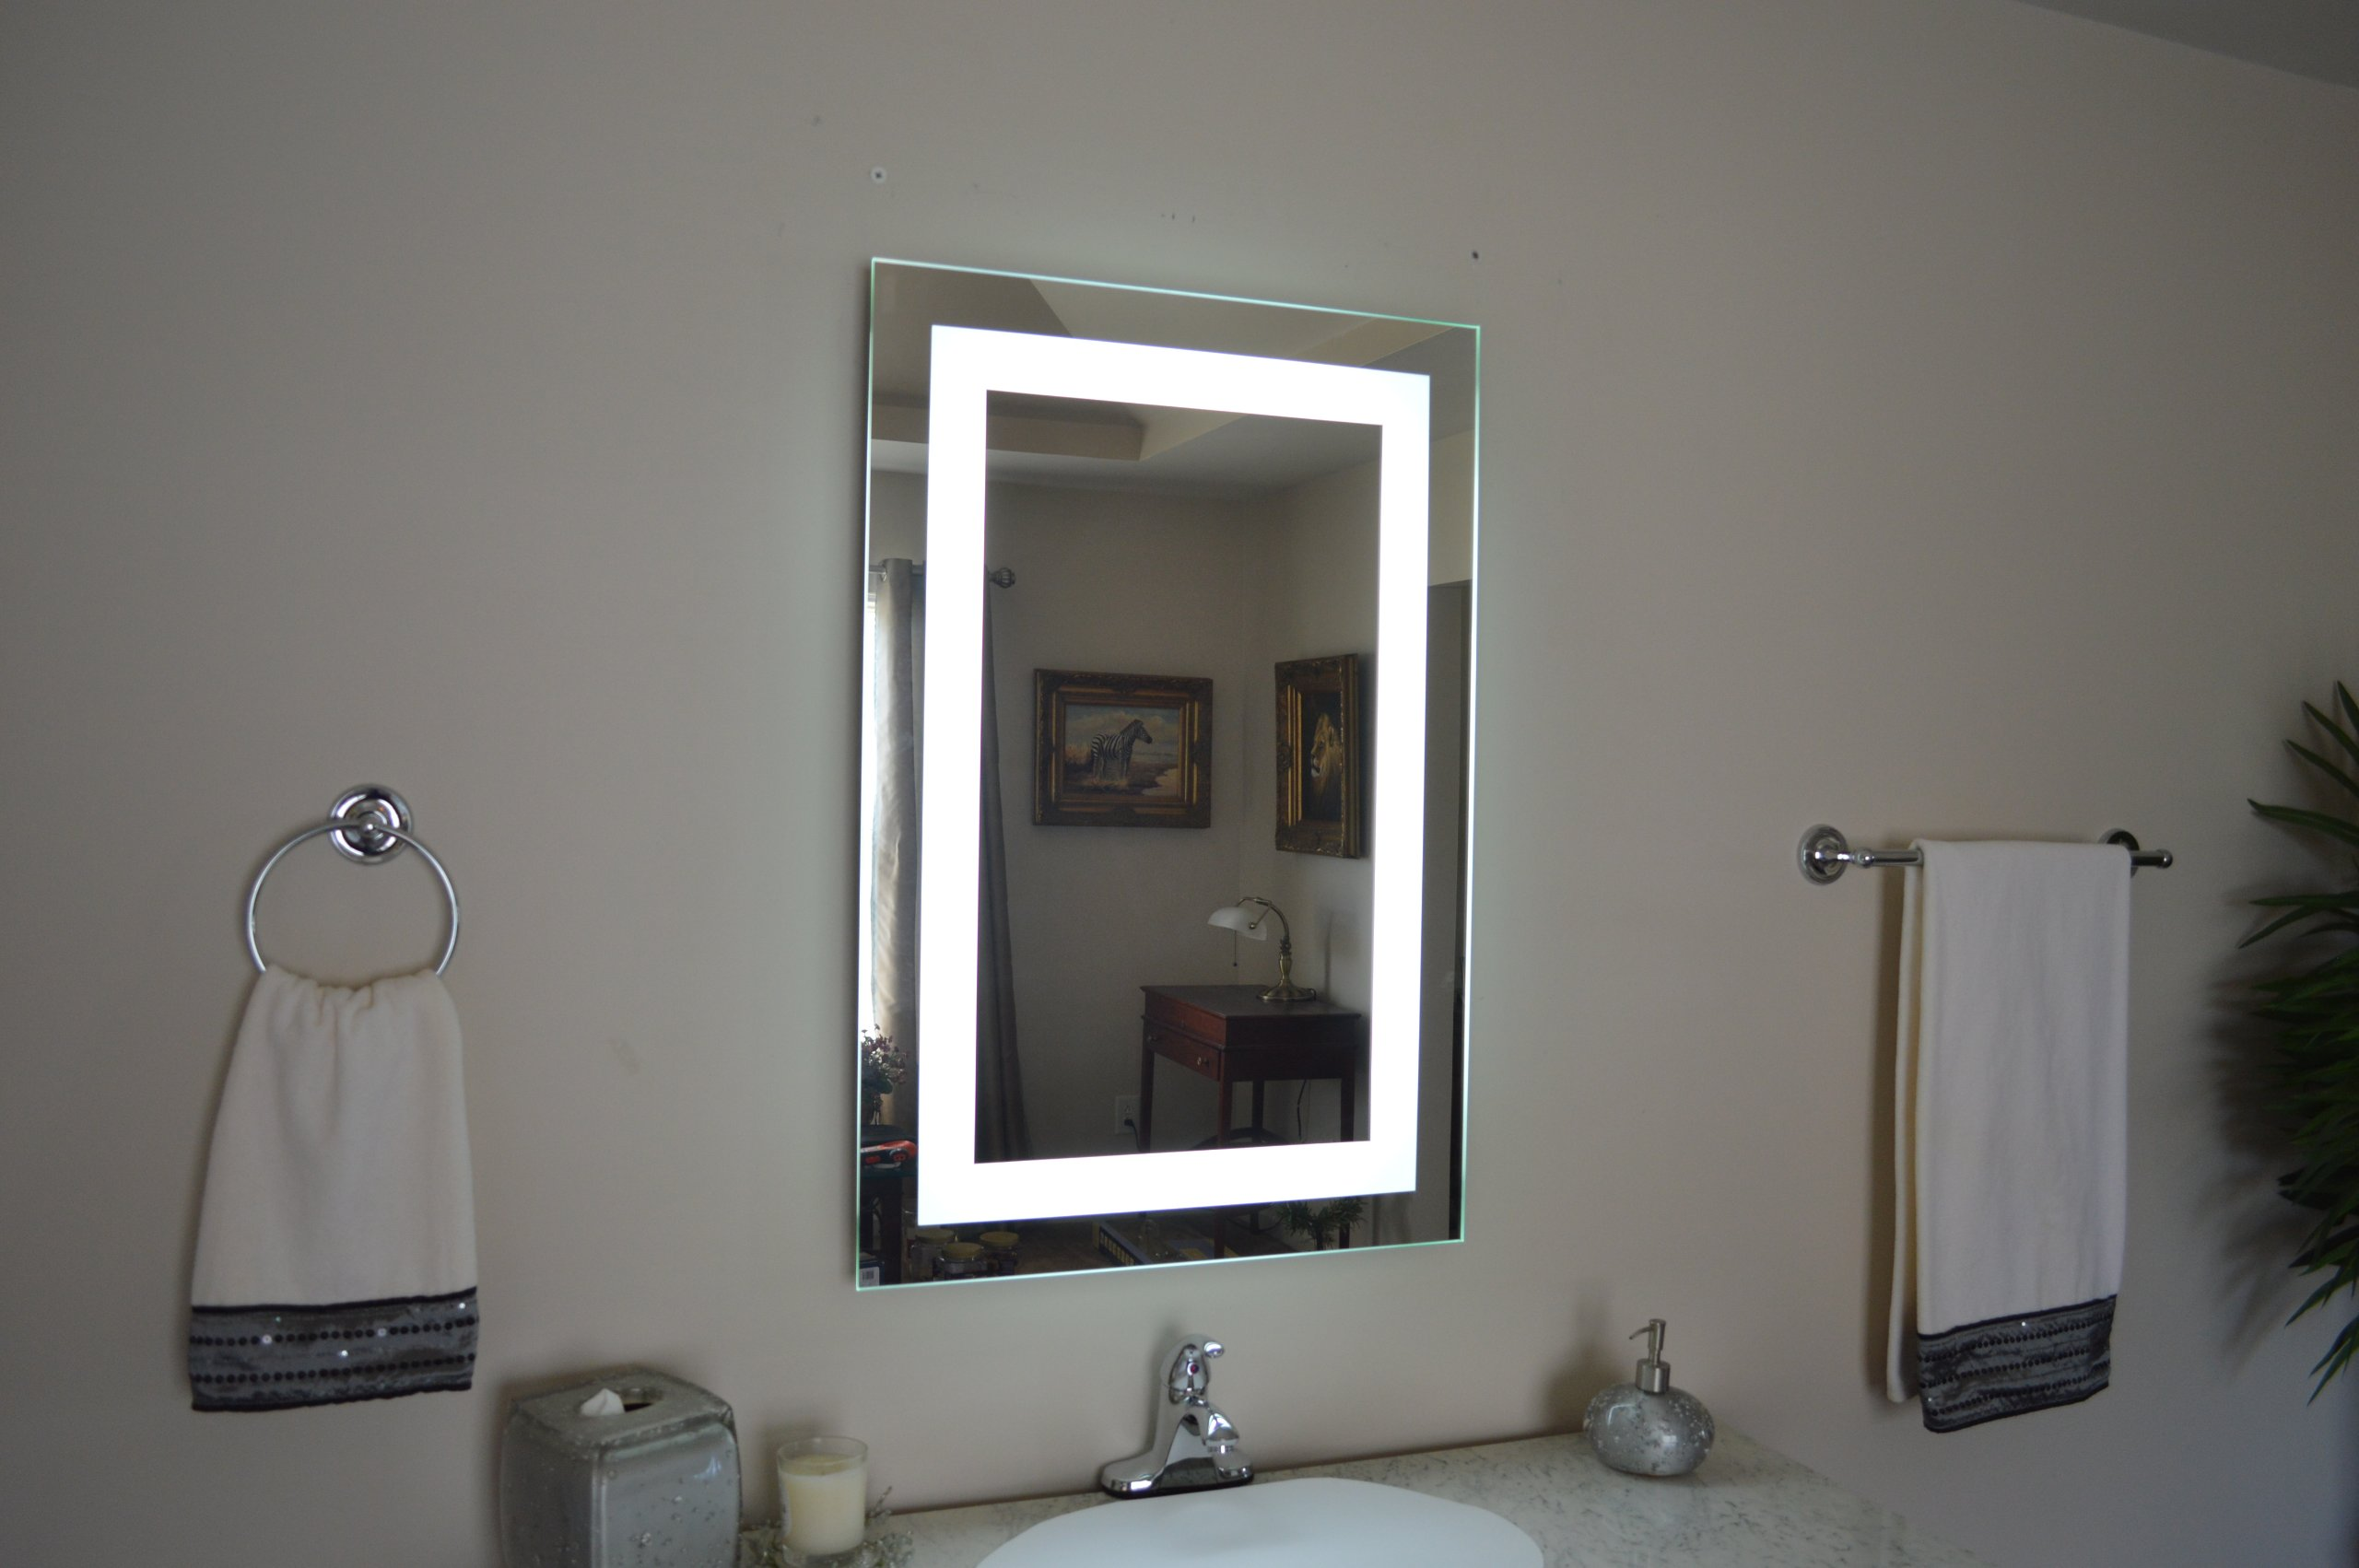 Wall Mounted Lighted Vanity Mirror LED MAM82836 Commercial Grade 28'' wide x 36'' tall